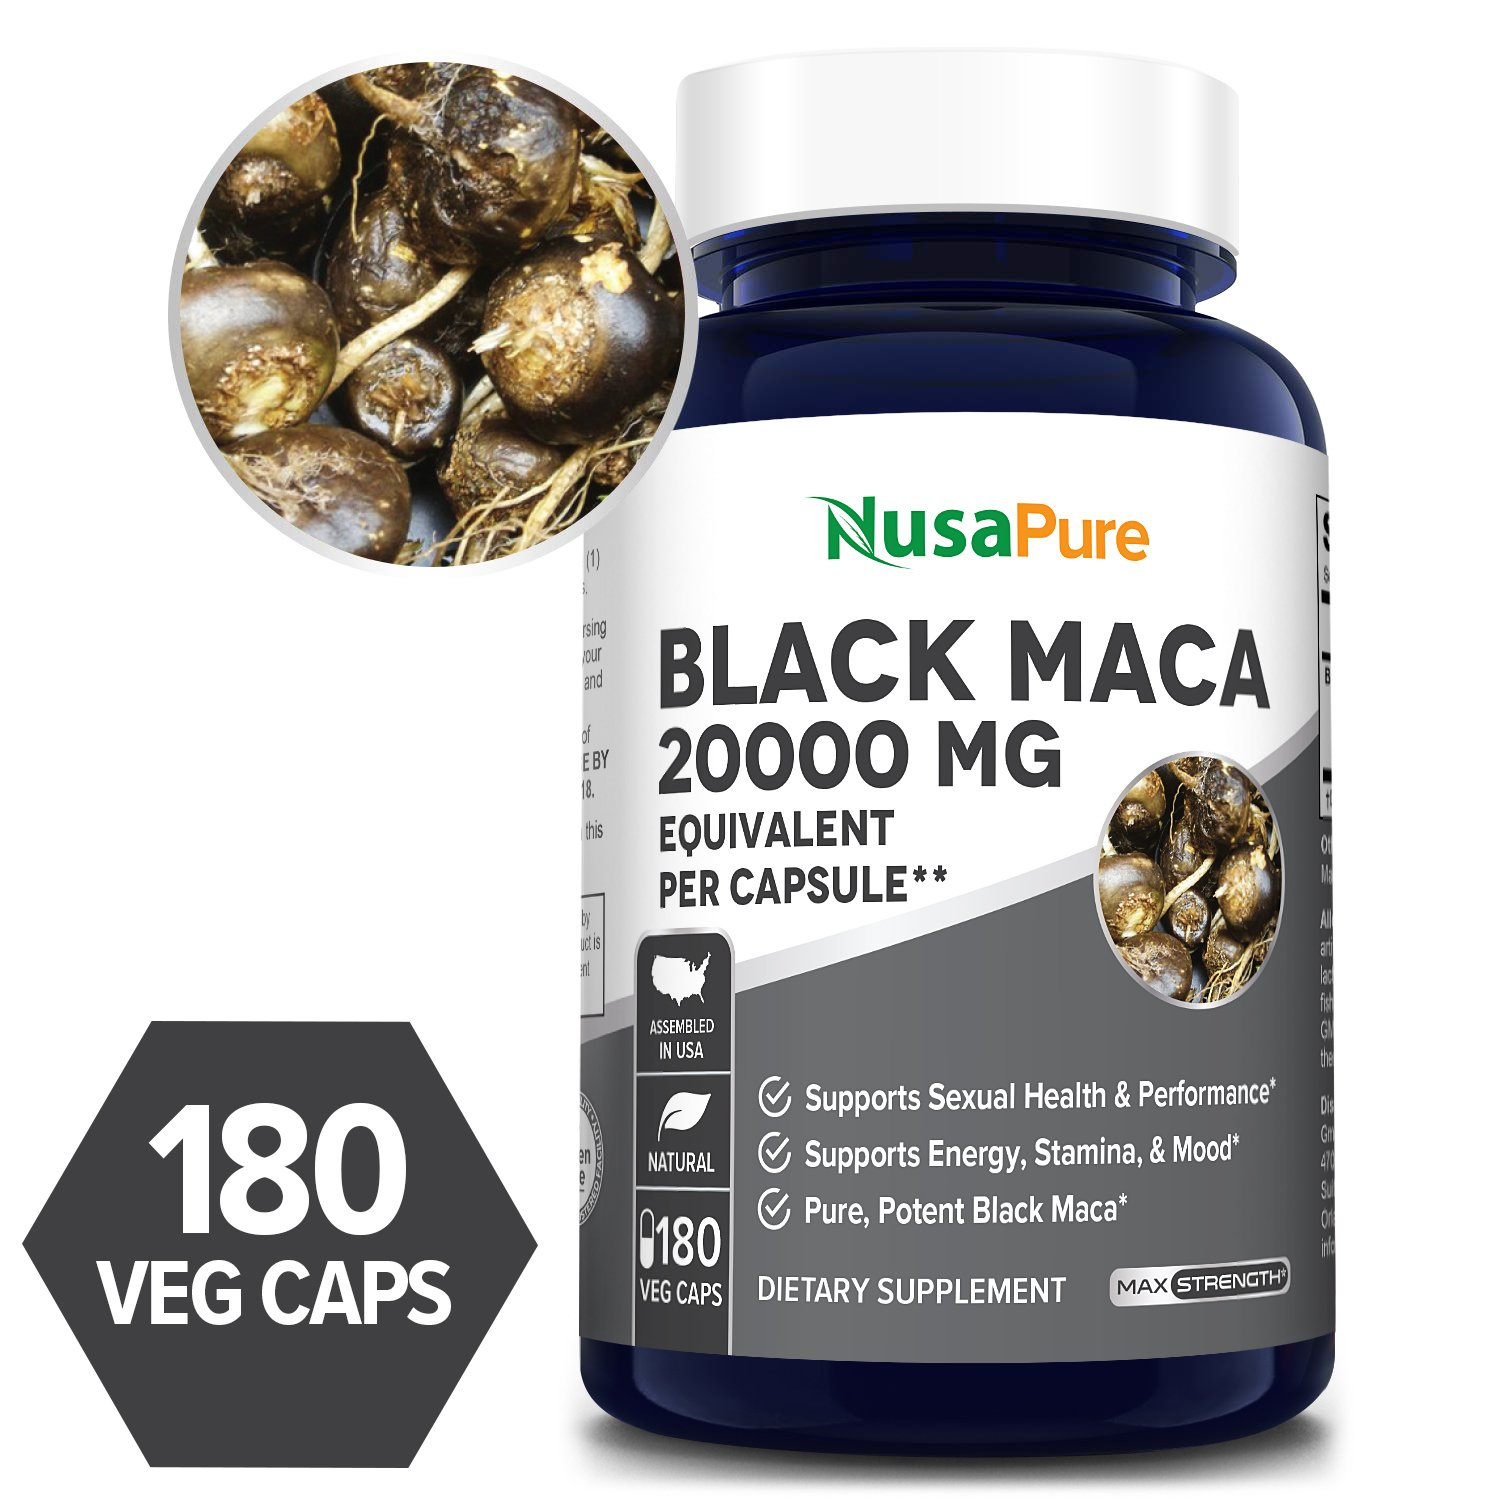 Black Maca Root extract 20,000mg - 180 Veg Caps (100% Vegetarian, Non-GMO, Gluten-free)